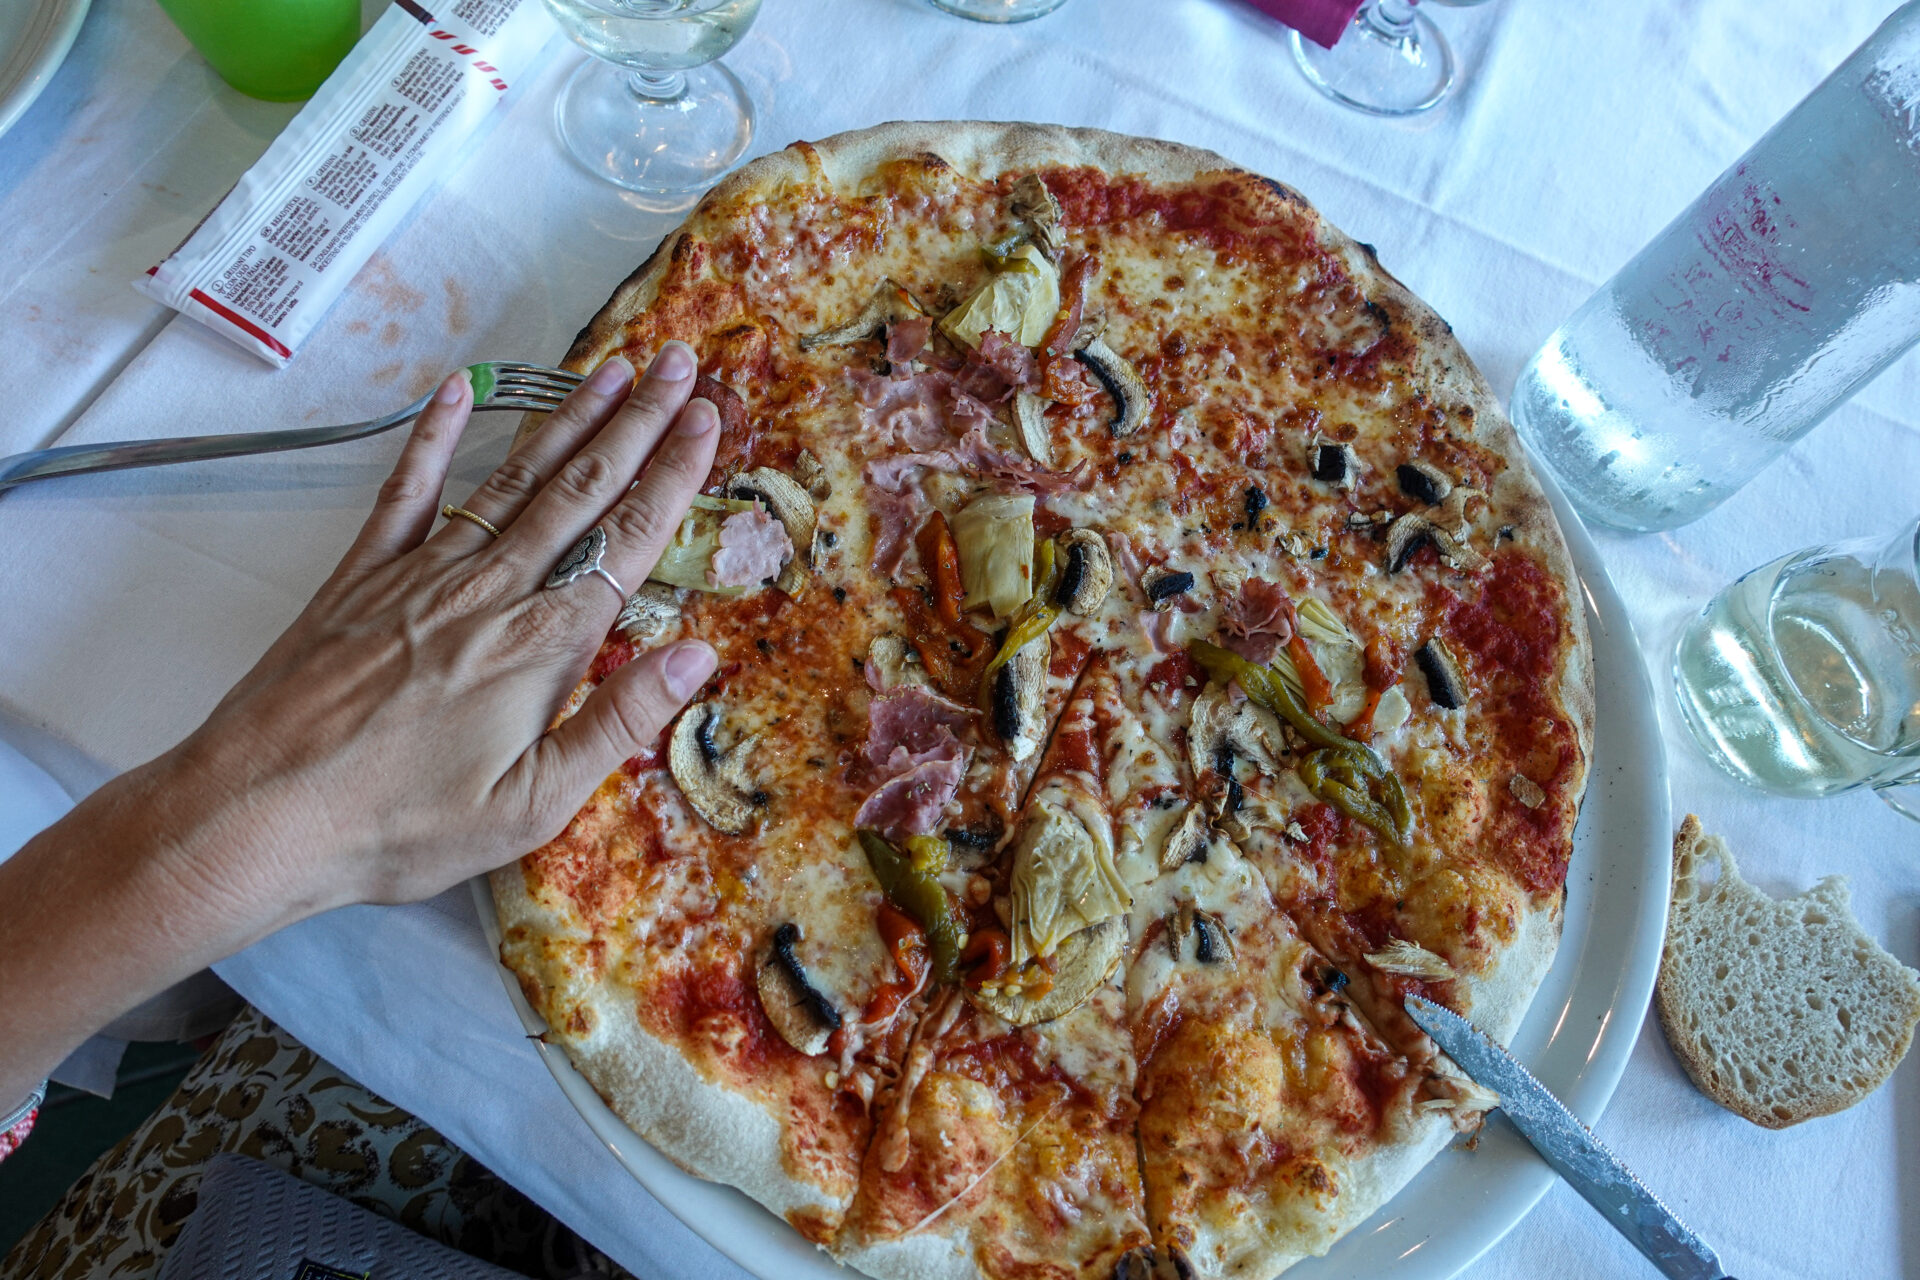 Pizzarestaurant i Varazze